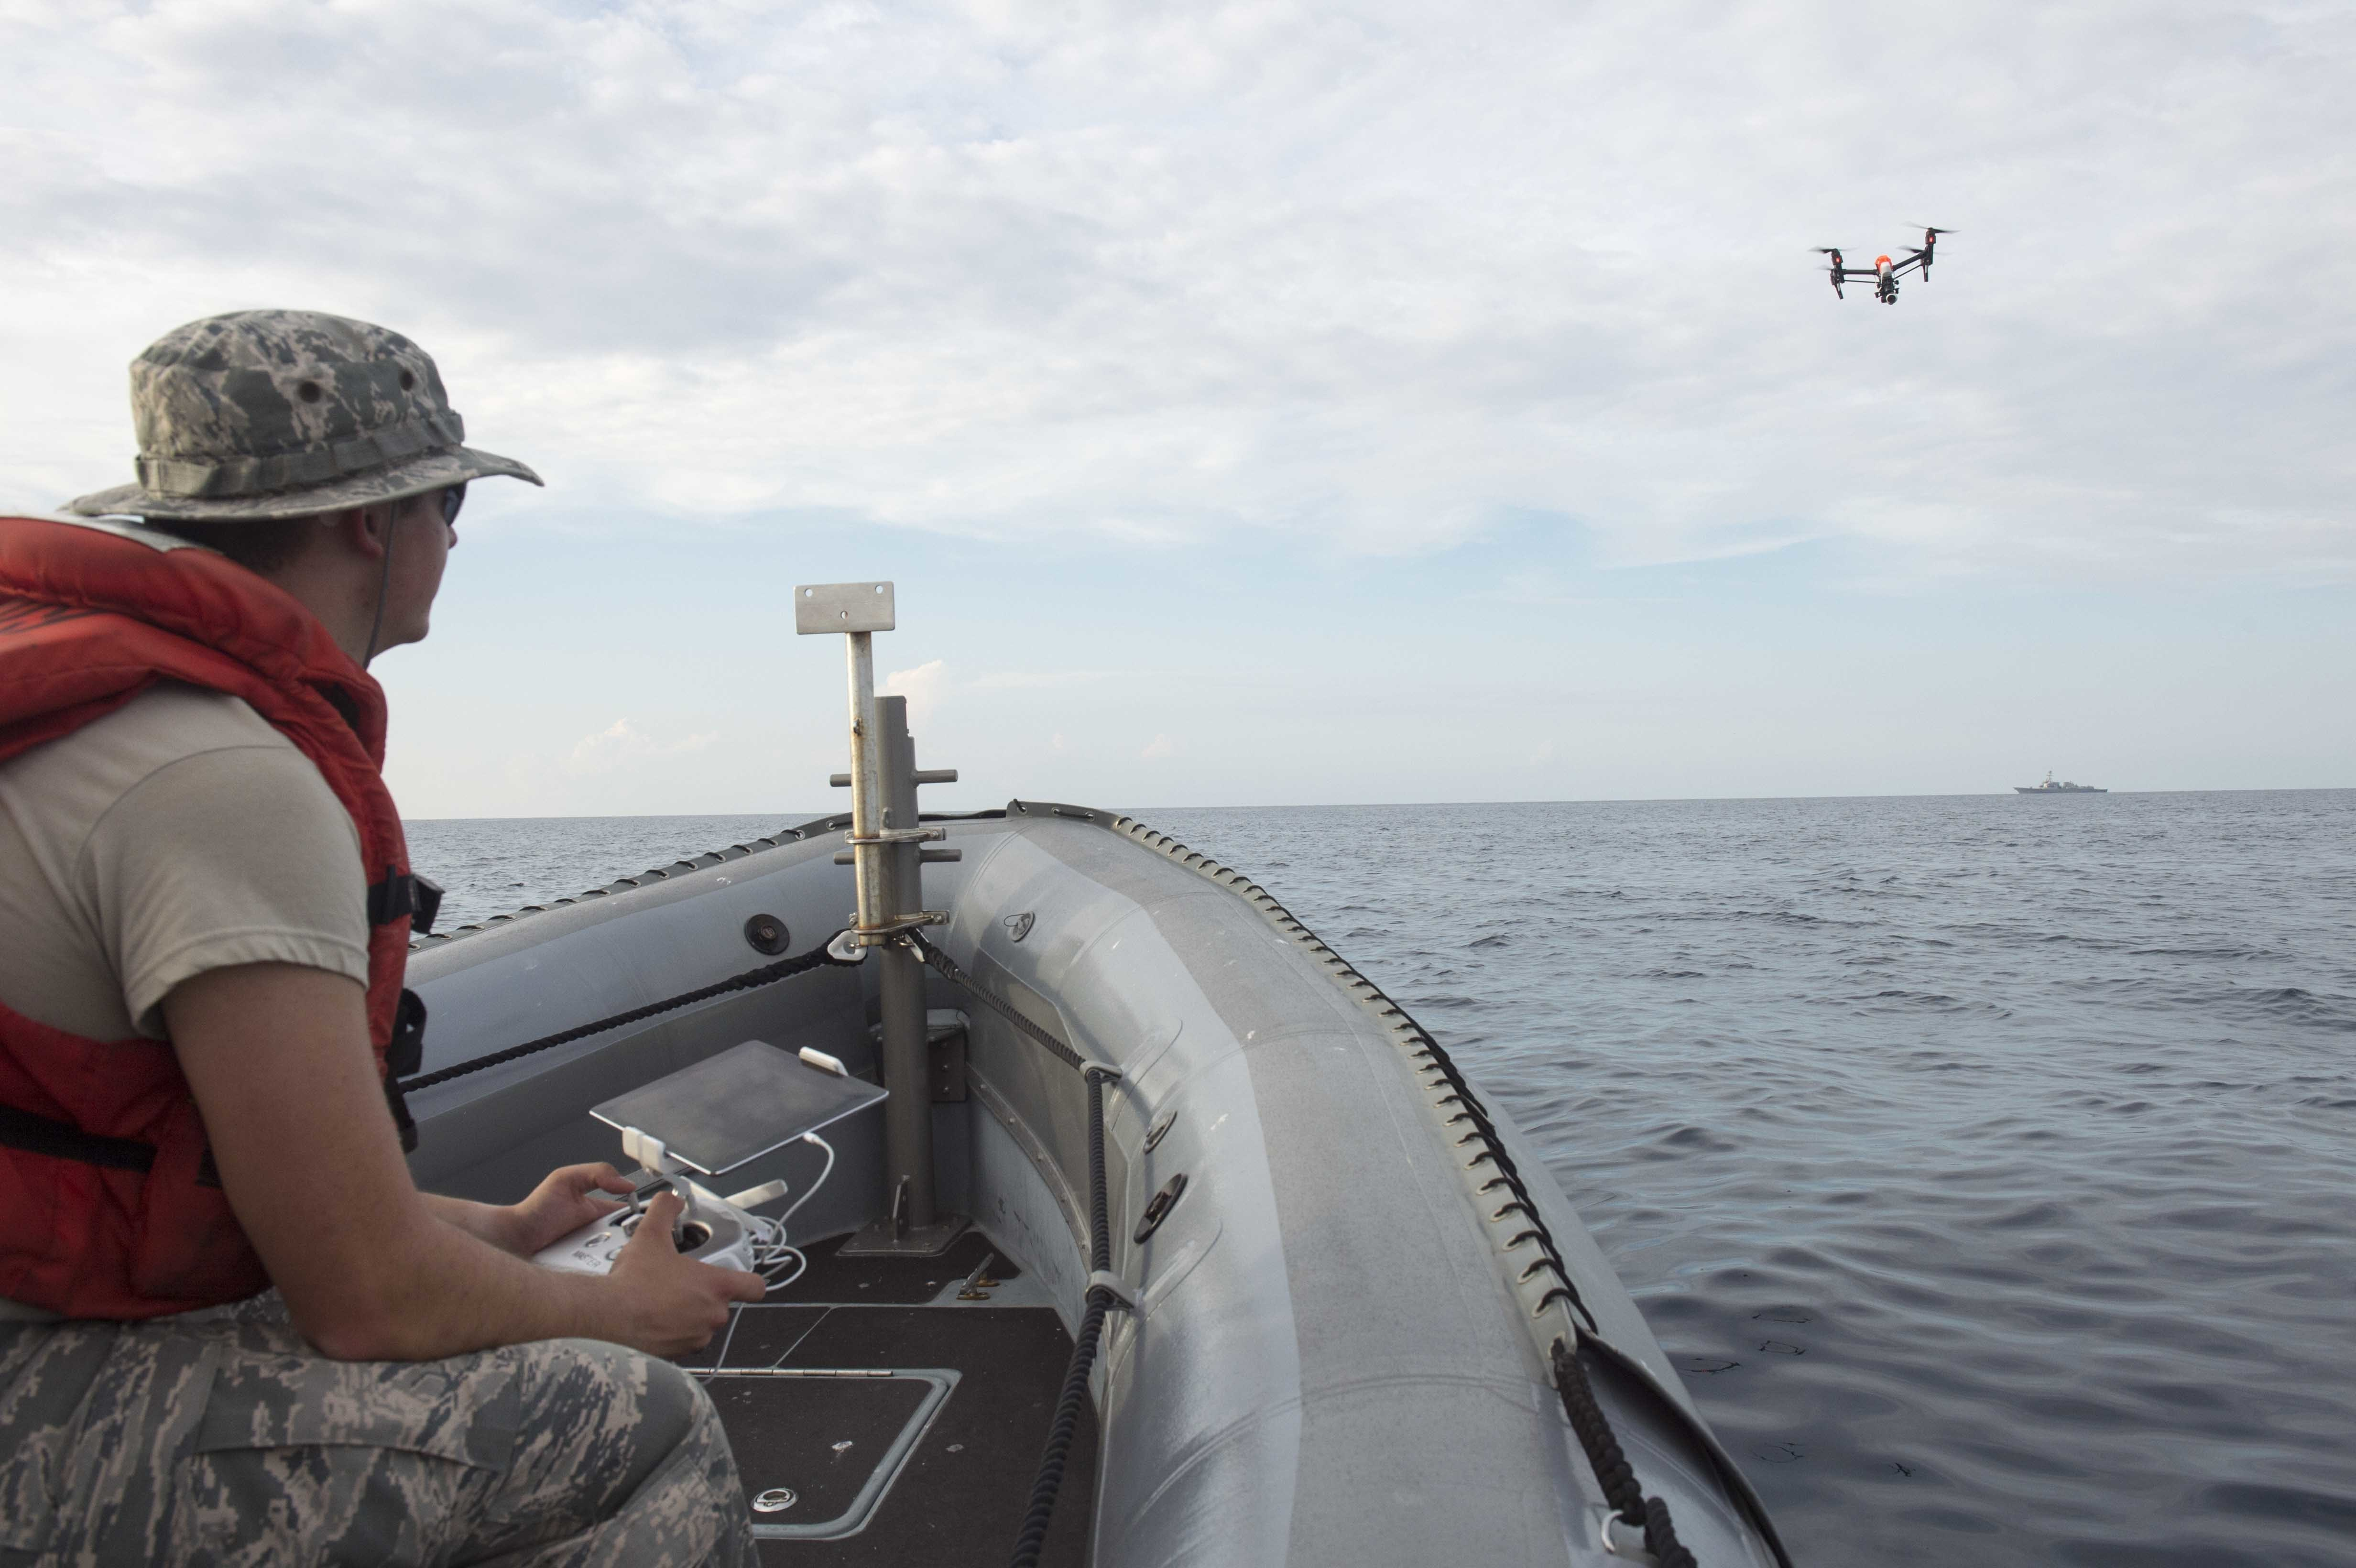 Cadet 1st Class Hanson Oxford, a student at the U.S. Air Force Academy, operates an unmanned aerial system aboard a rigid hull inflatable boat during exercise Black Dart. Black Dart is the largest Department of Defense (DoD) live-fly, live-fire, counter Unmanned Aerial Systems (UAS) technology demonstration.